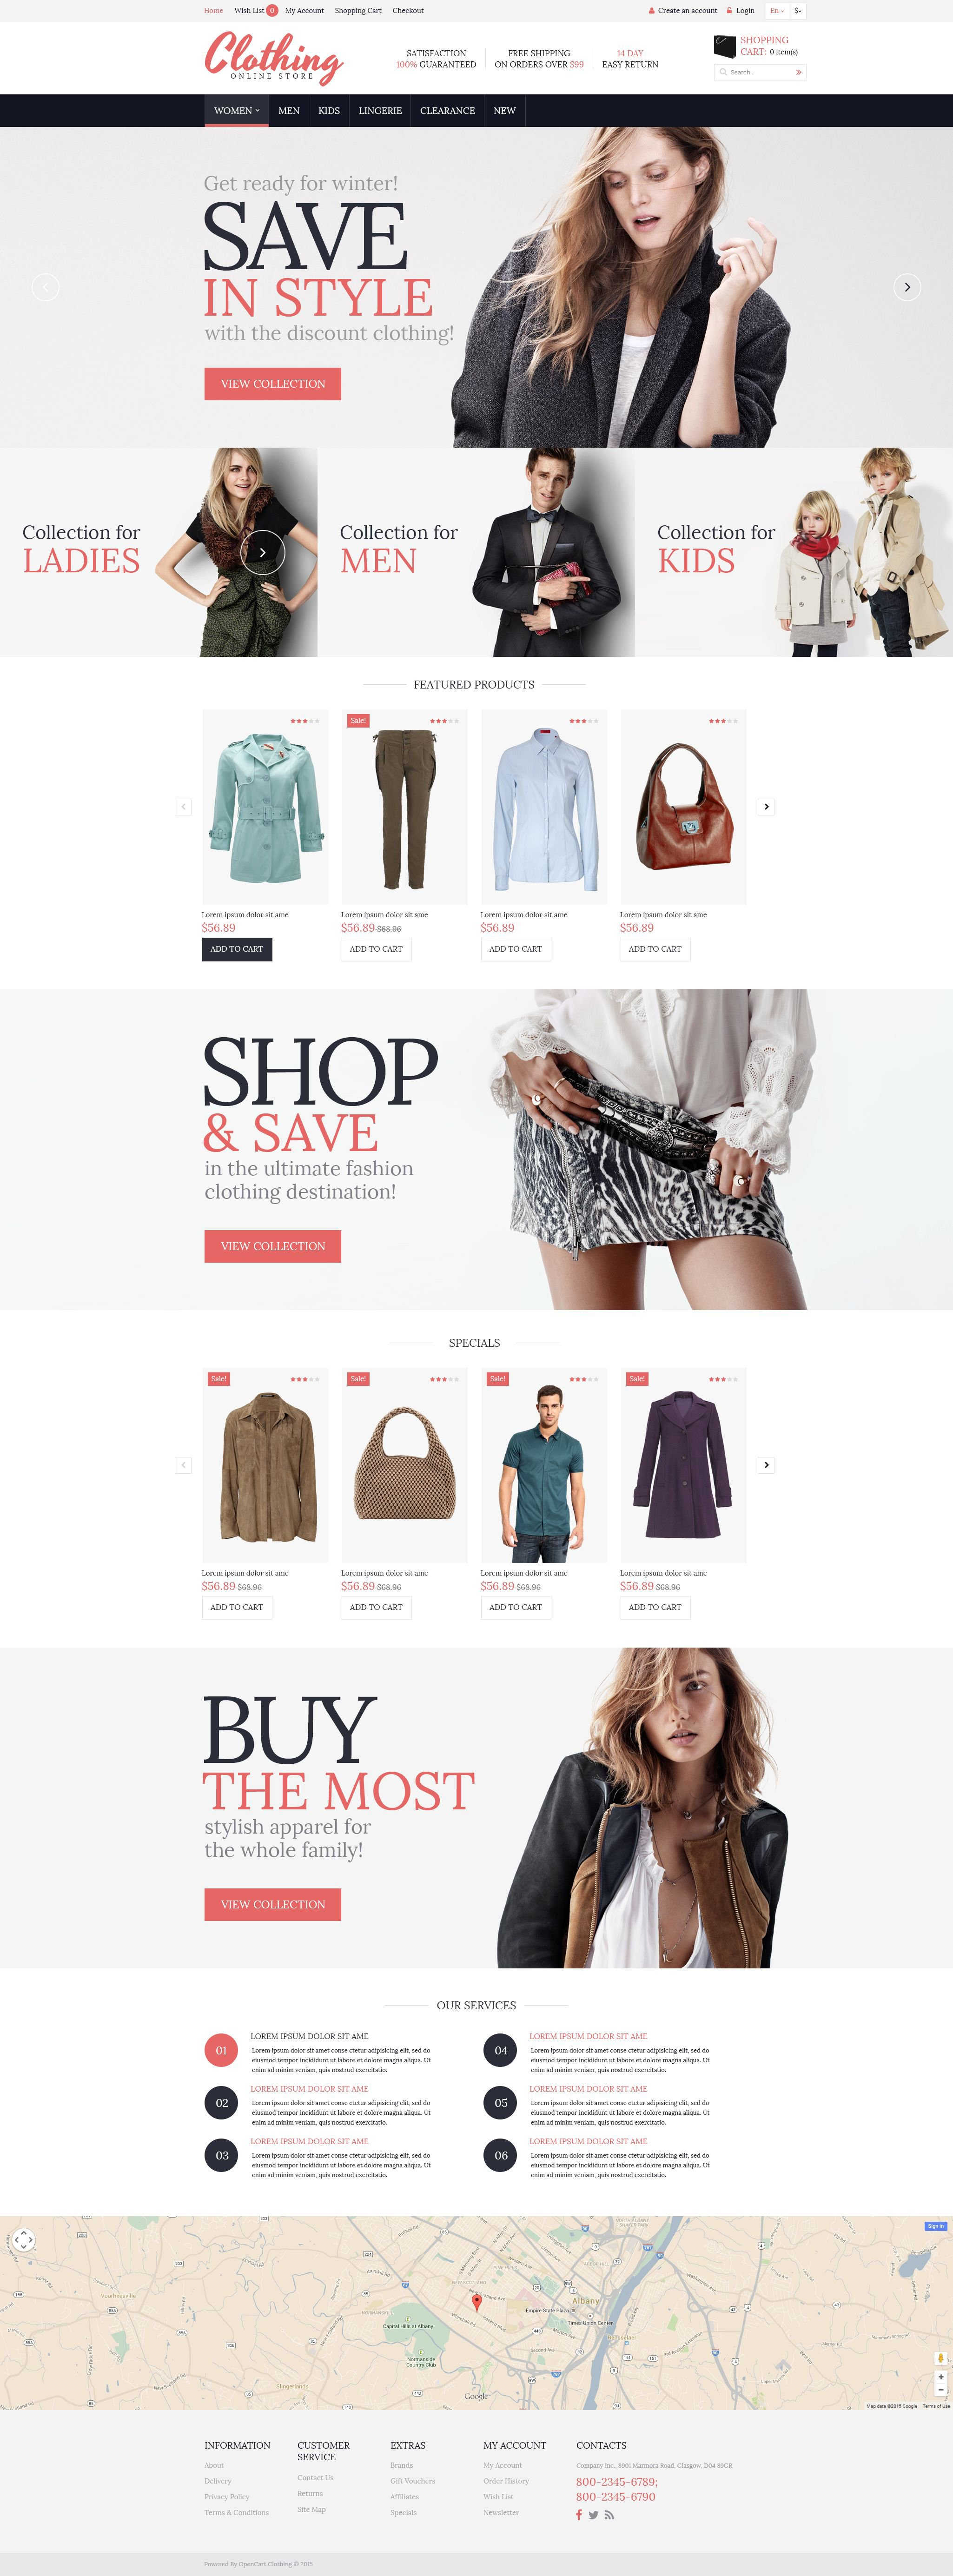 The Clothes Wear OpenCart Design 53451, one of the best OpenCart templates of its kind (fashion, most popular), also known as clothes wear OpenCart template, clothing OpenCart template, apparel OpenCart template, work OpenCart template, shoes OpenCart template, gloves OpenCart template, wear OpenCart template, Safety Boots WEAR footwear OpenCart template, shirts OpenCart template, protective OpenCart template, goggles OpenCart template, protective OpenCart template, eyewear and related with clothes wear, clothing, apparel, work, shoes, gloves, wear, Safety Boots WEAR footwear, shirts, protective, goggles, protective, eyewear, etc.